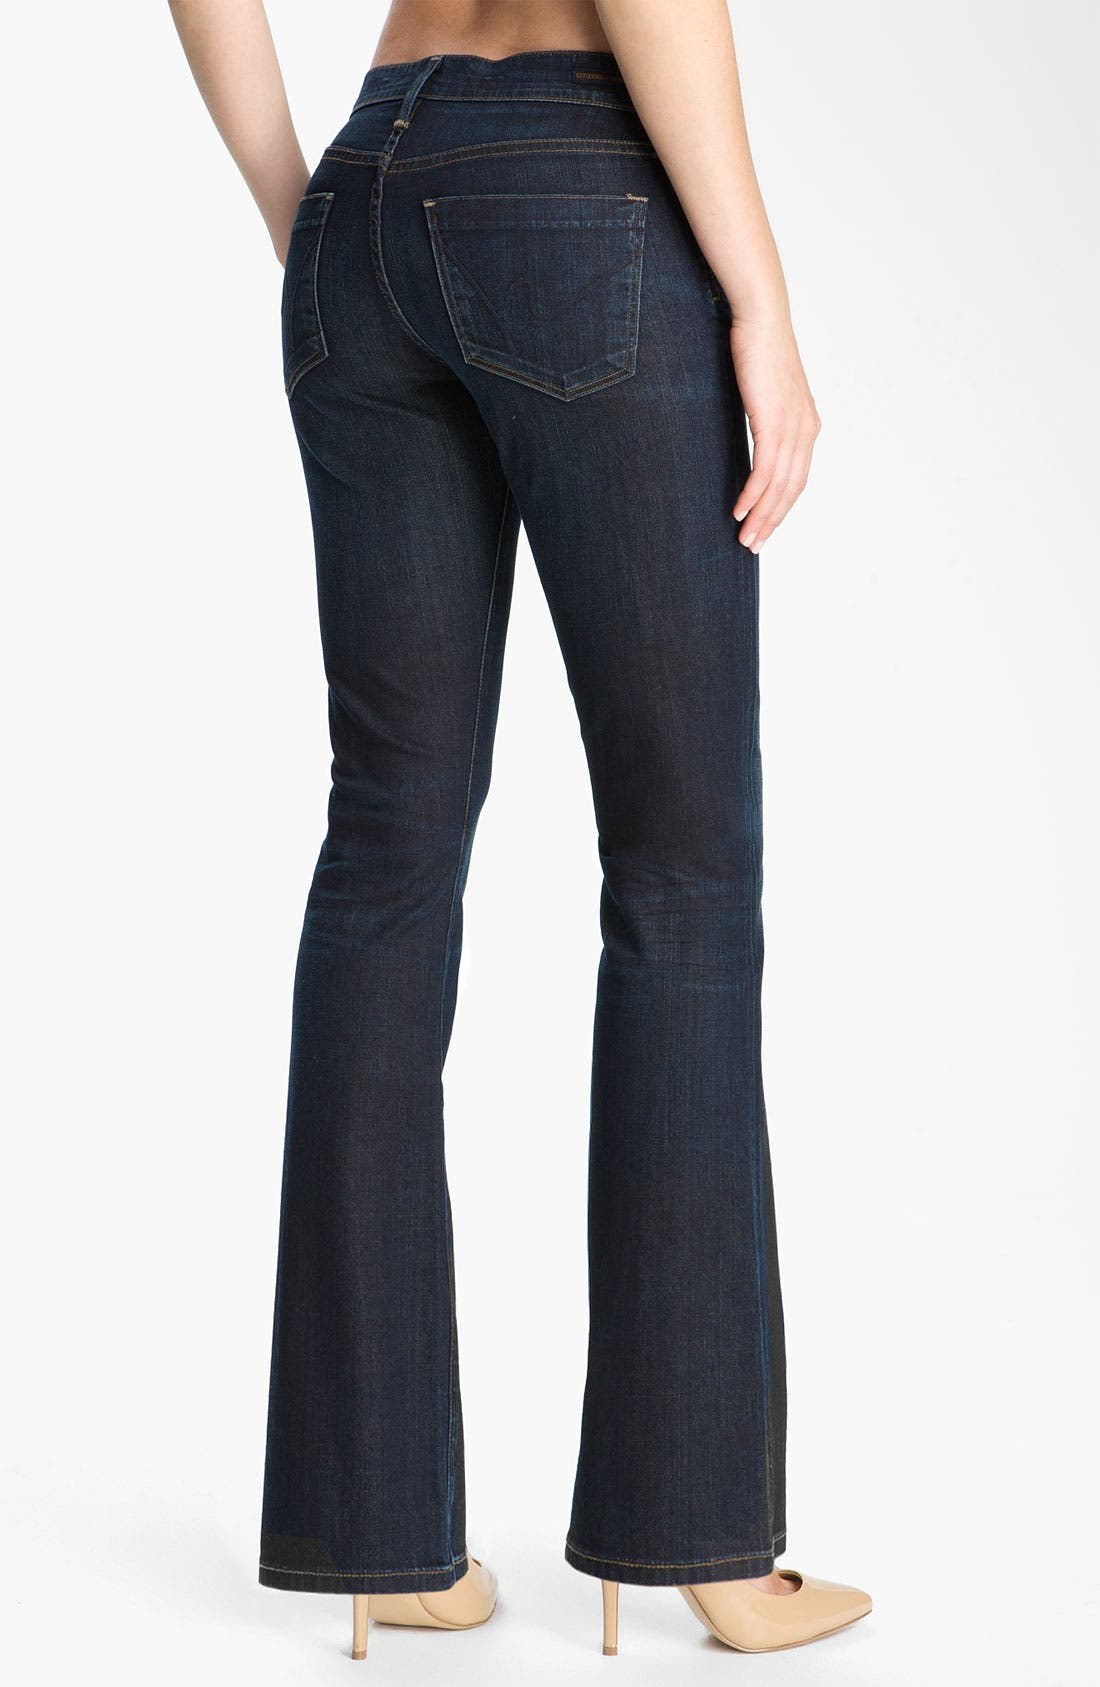 Alternate Image 2  - Citizens of Humanity 'Dita' Bootcut Jeans (Felt Dark Blue) (Petite)